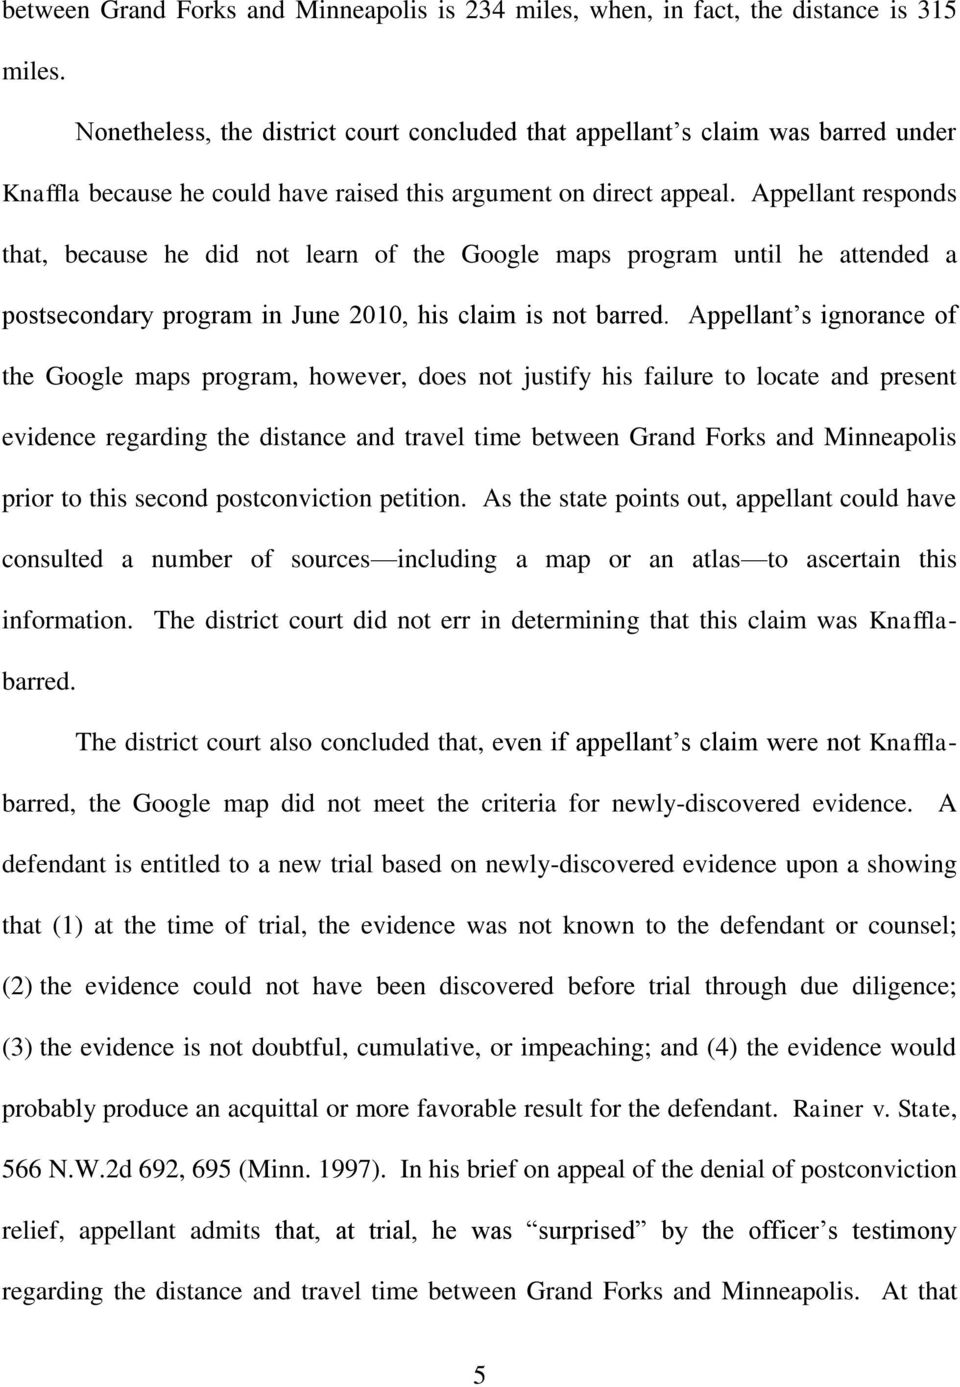 Appellant responds that, because he did not learn of the Google maps program until he attended a postsecondary program in June 2010, his claim is not barred.